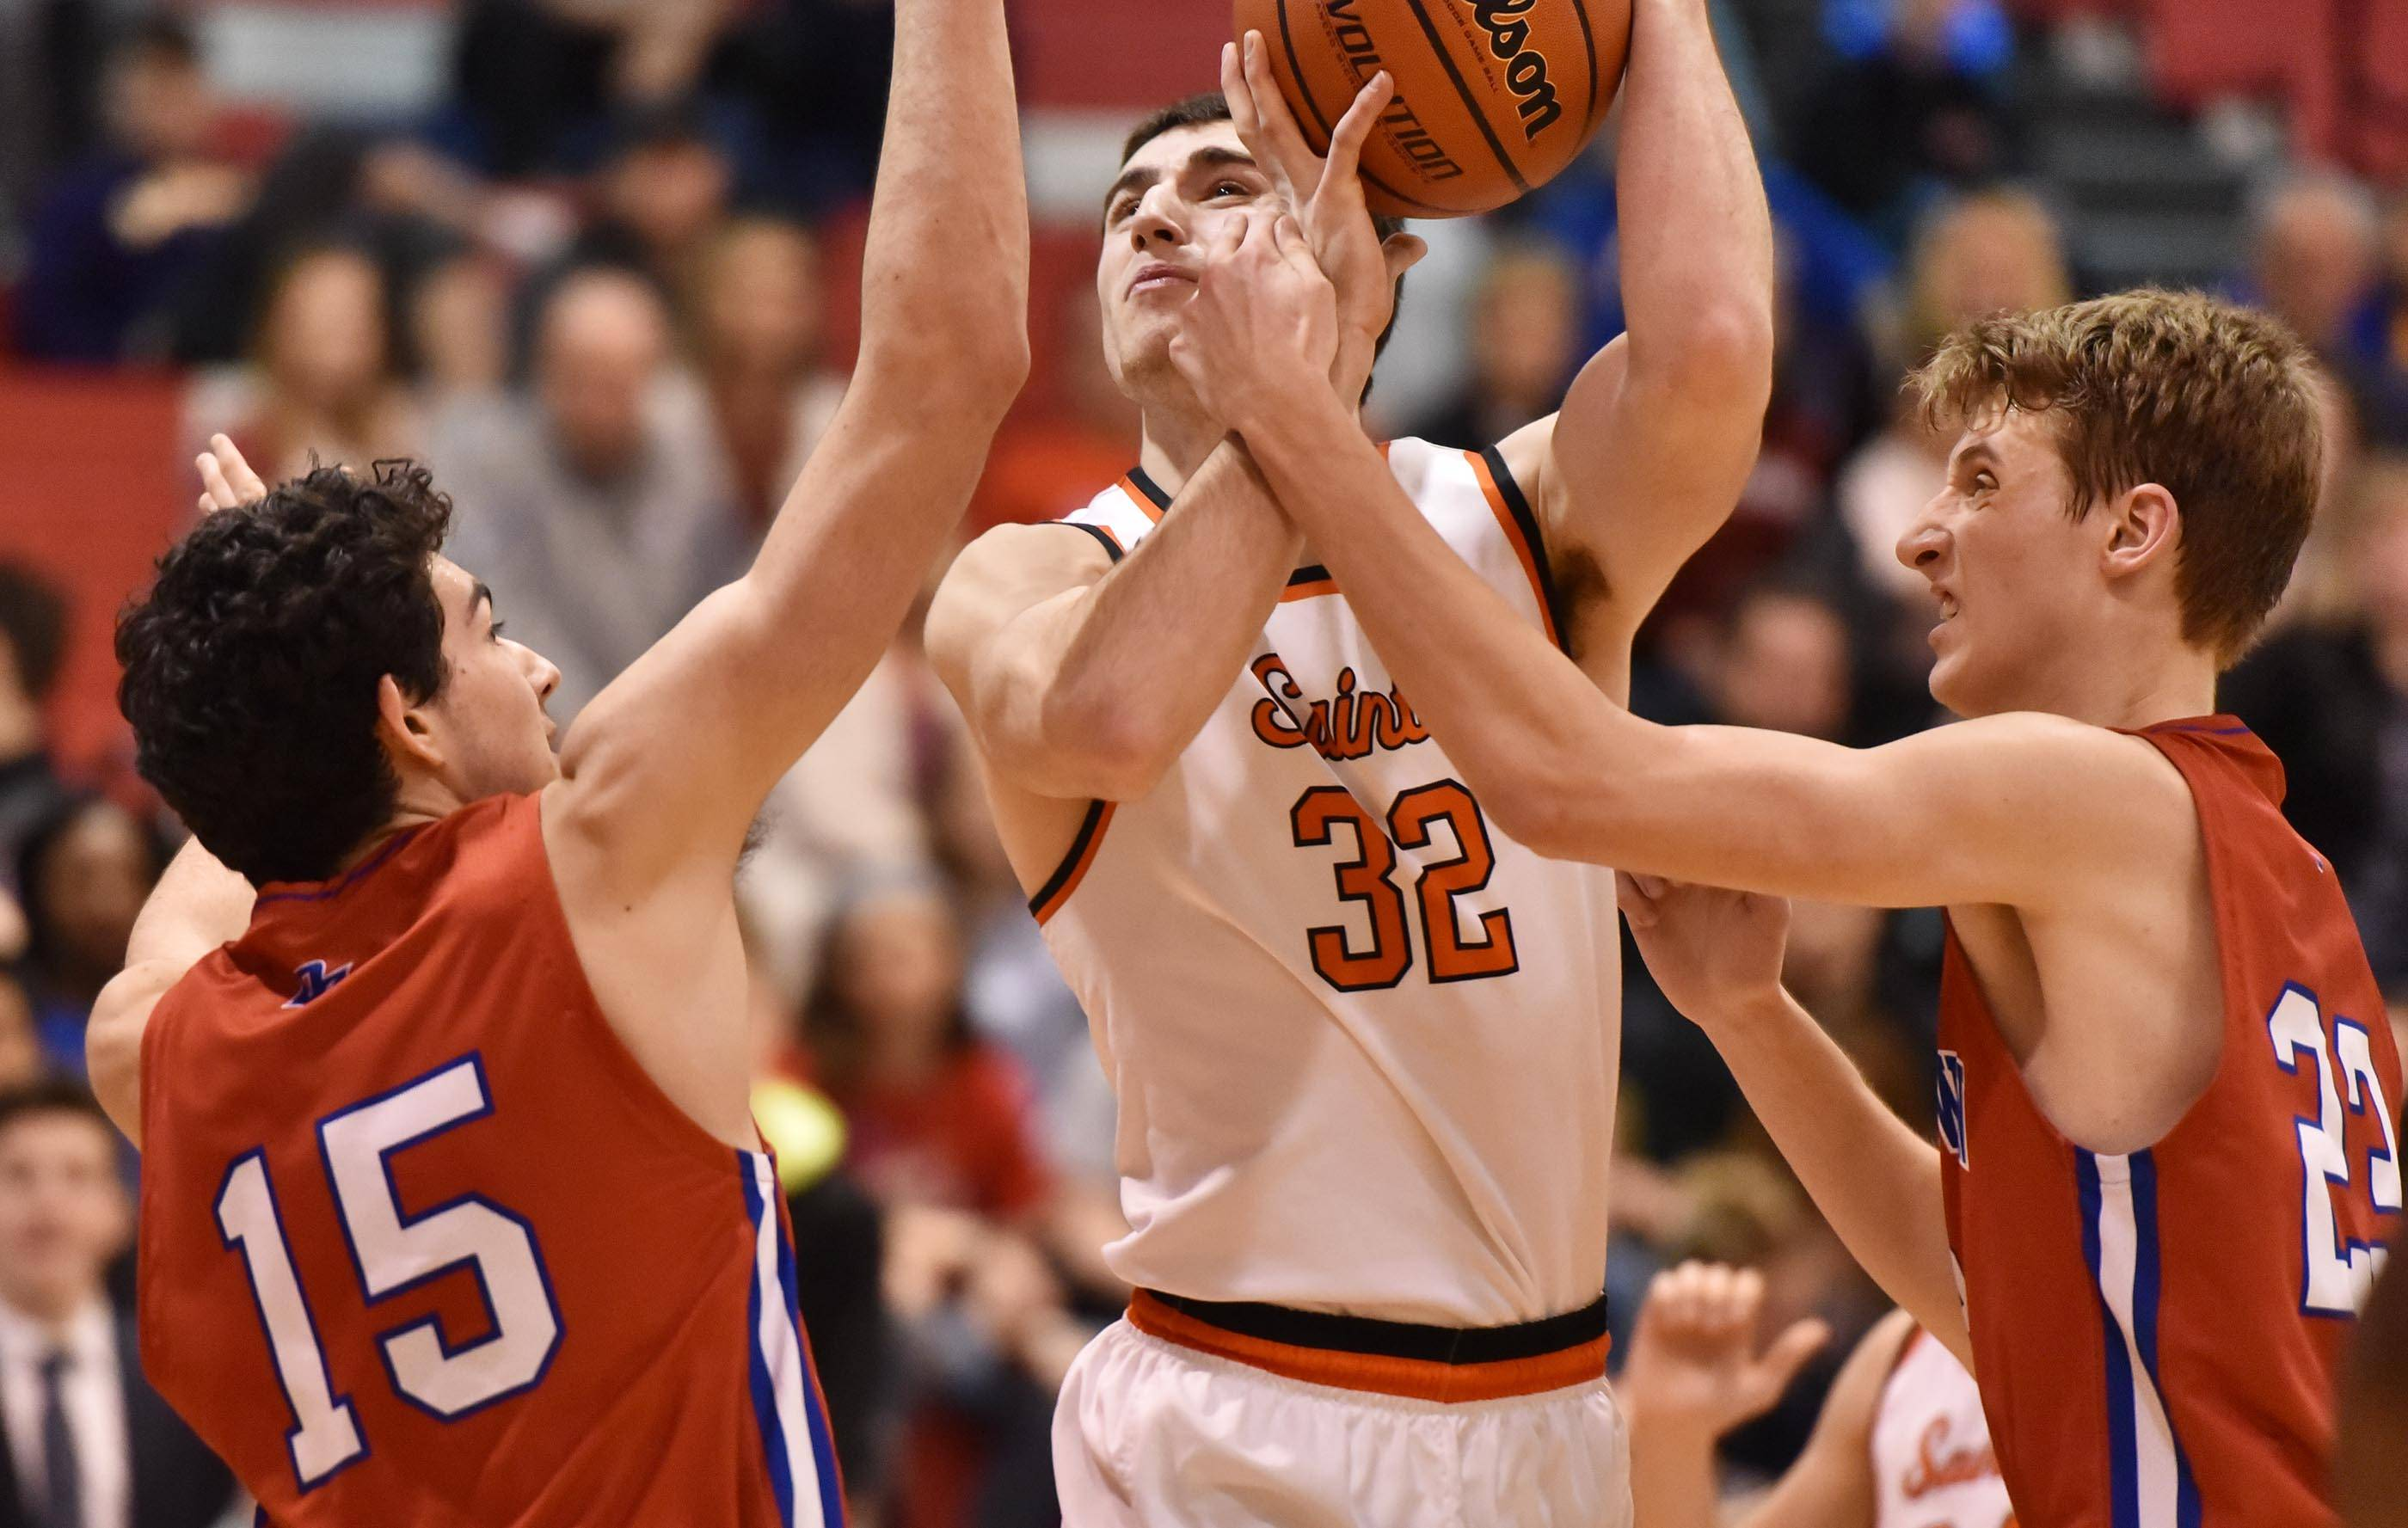 St. Charles East's Justin Hardy is defended by Dundee-Crown's Bradley Stec and Gabriel Bergeron in the Class 4A Dundee-Crown boys basketball semifinal regional game Wednesday.